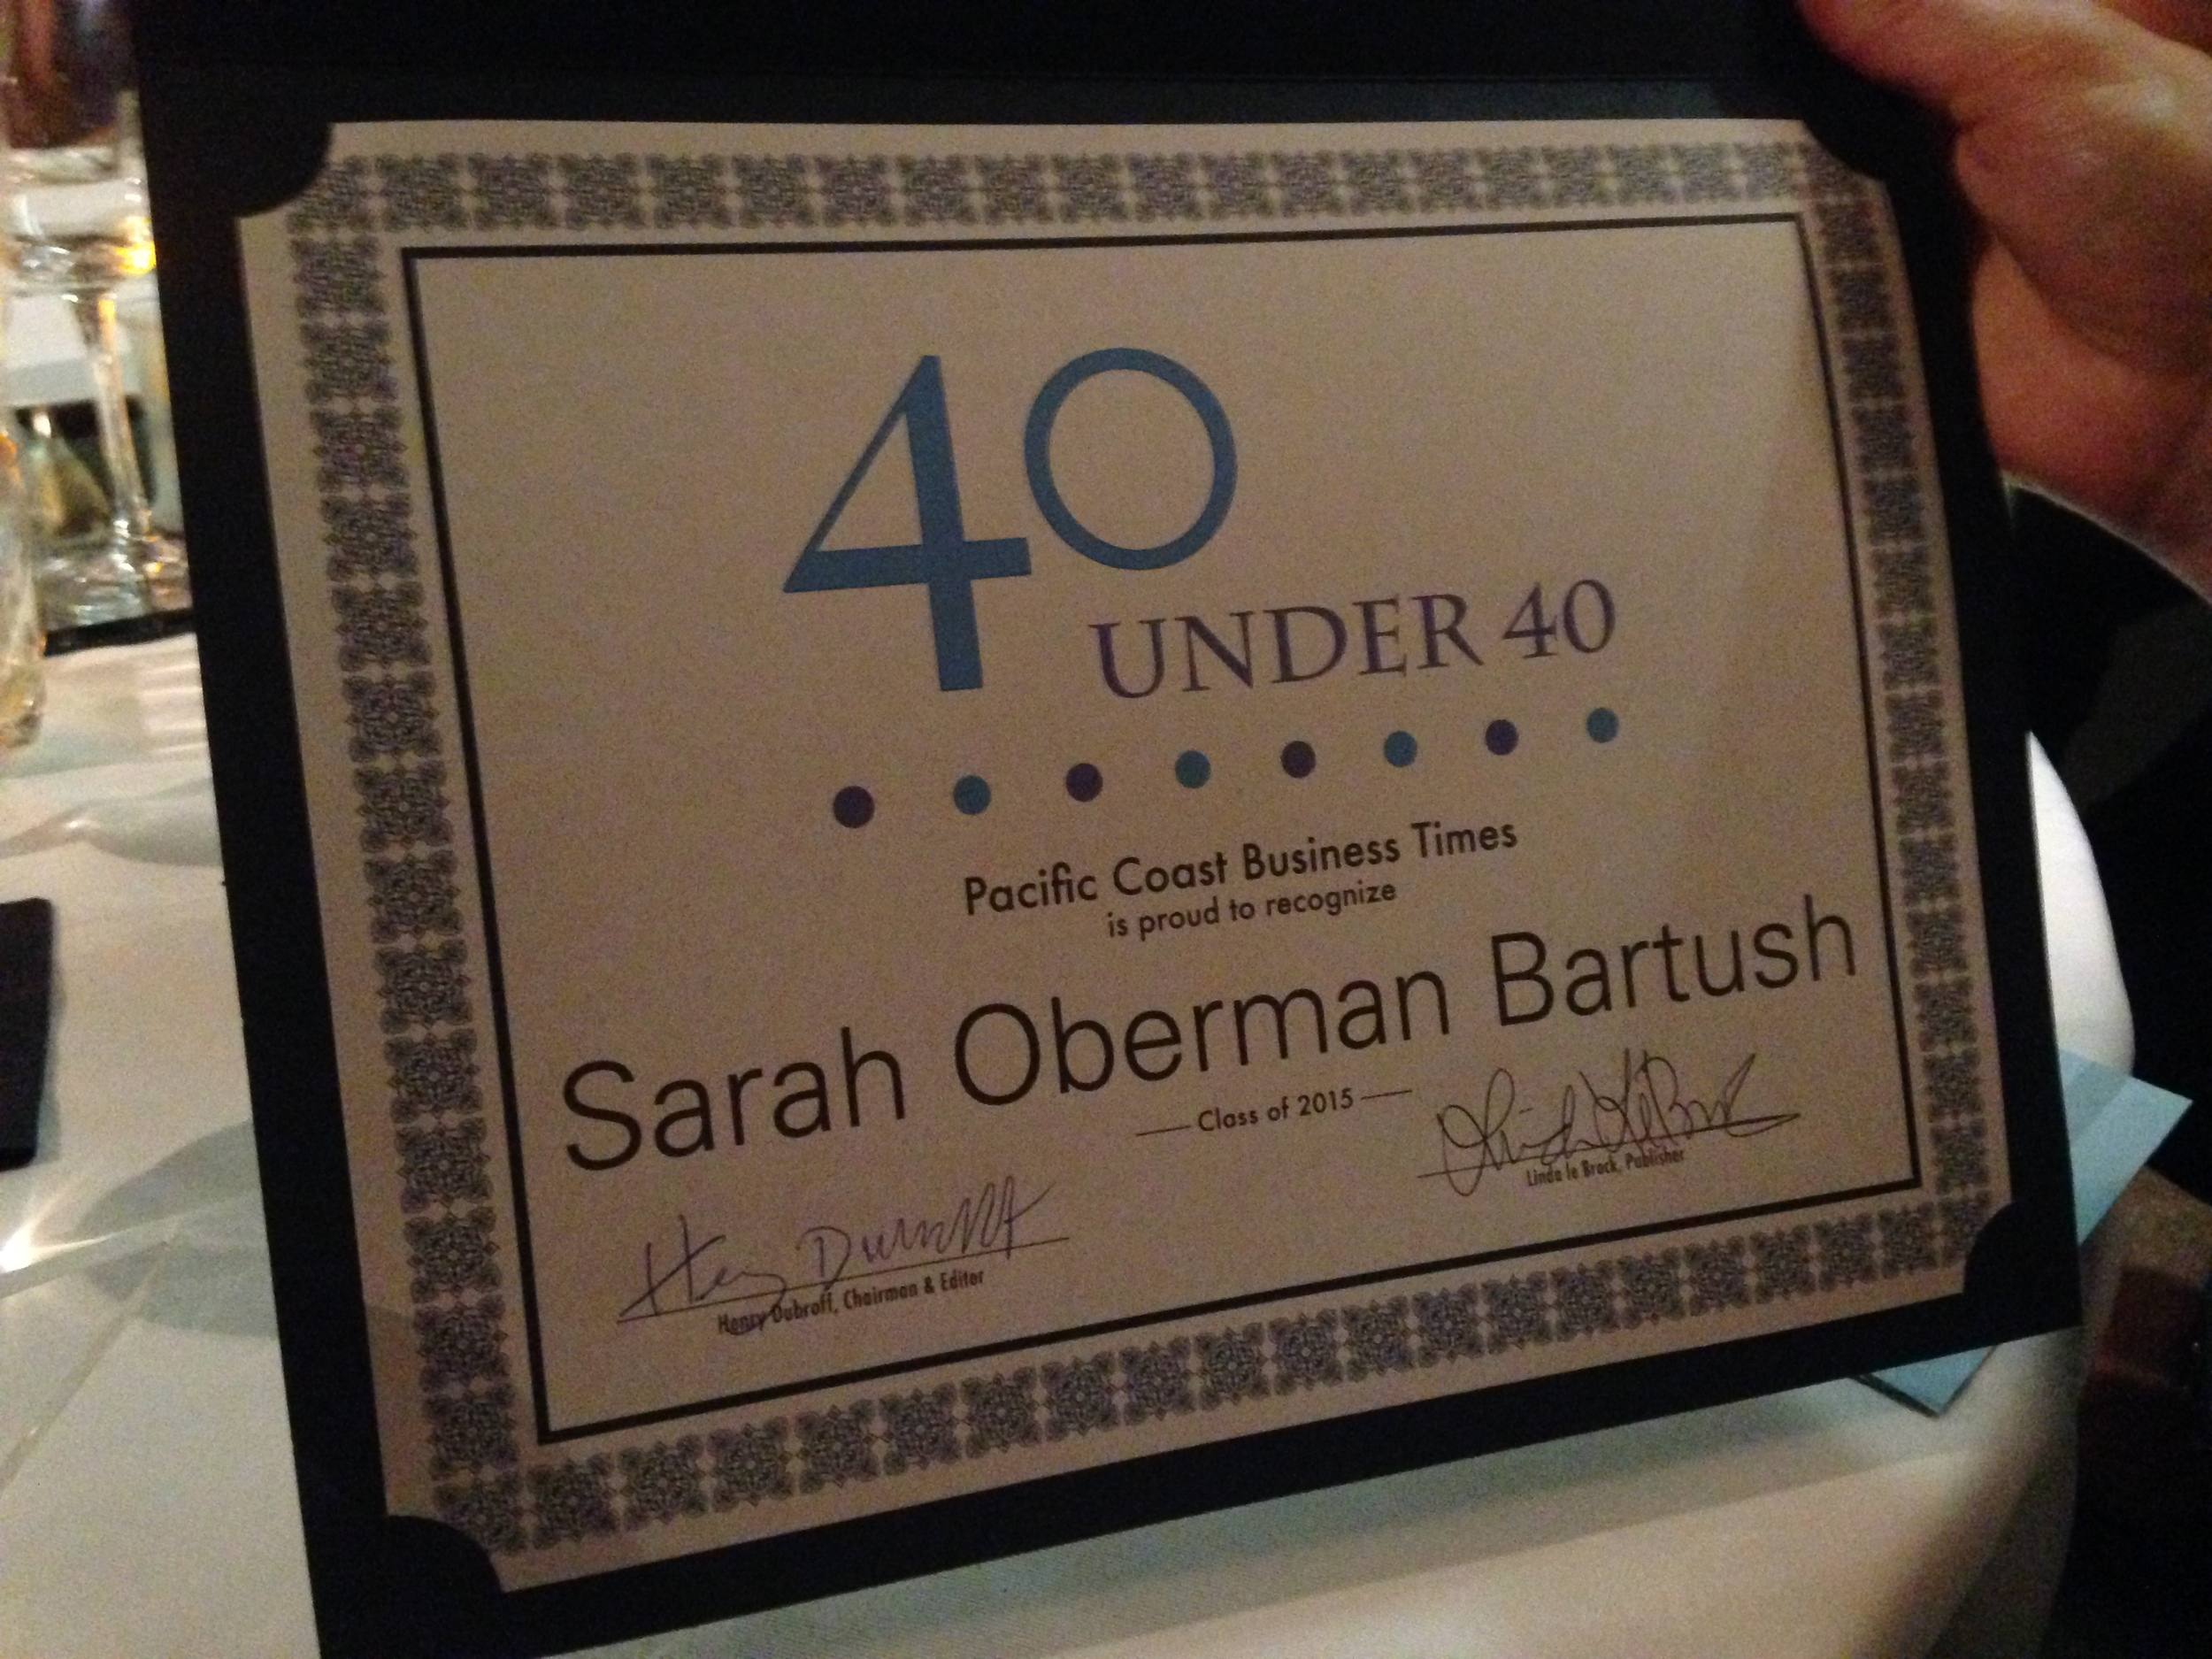 Sarah Oberman Bartush's 40 under 40 Award